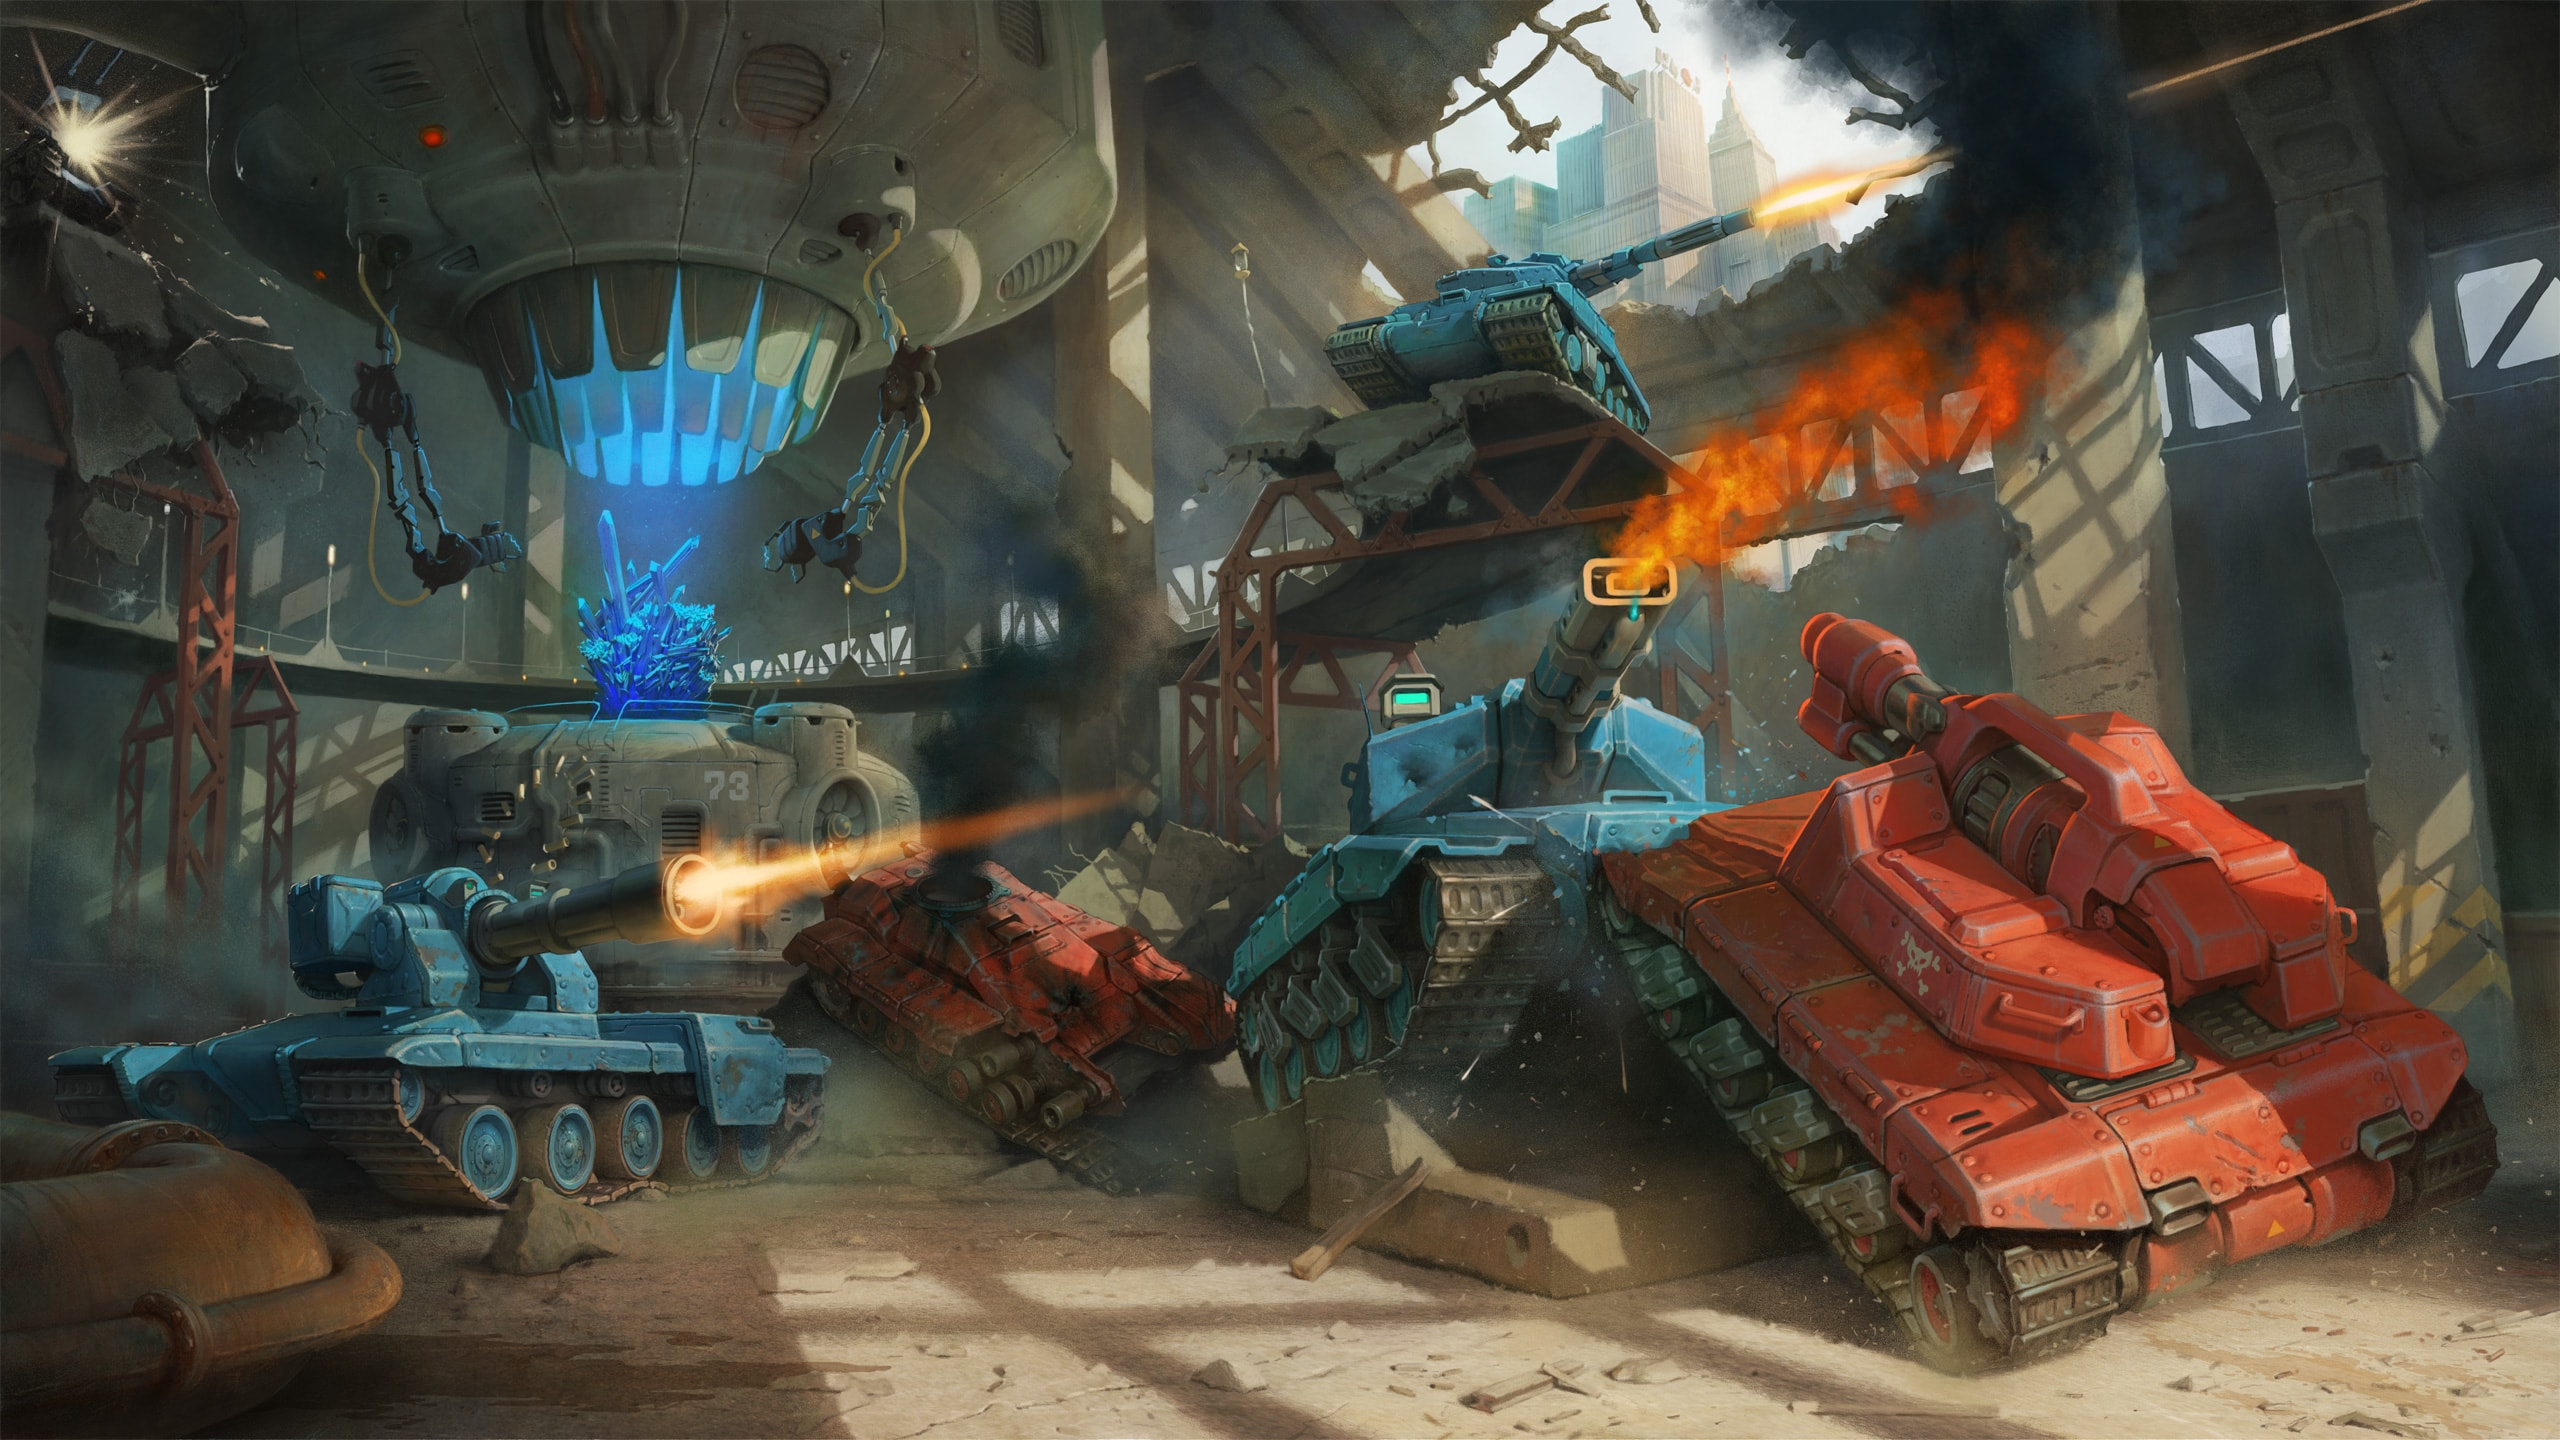 Tanki X - free-to-play online game